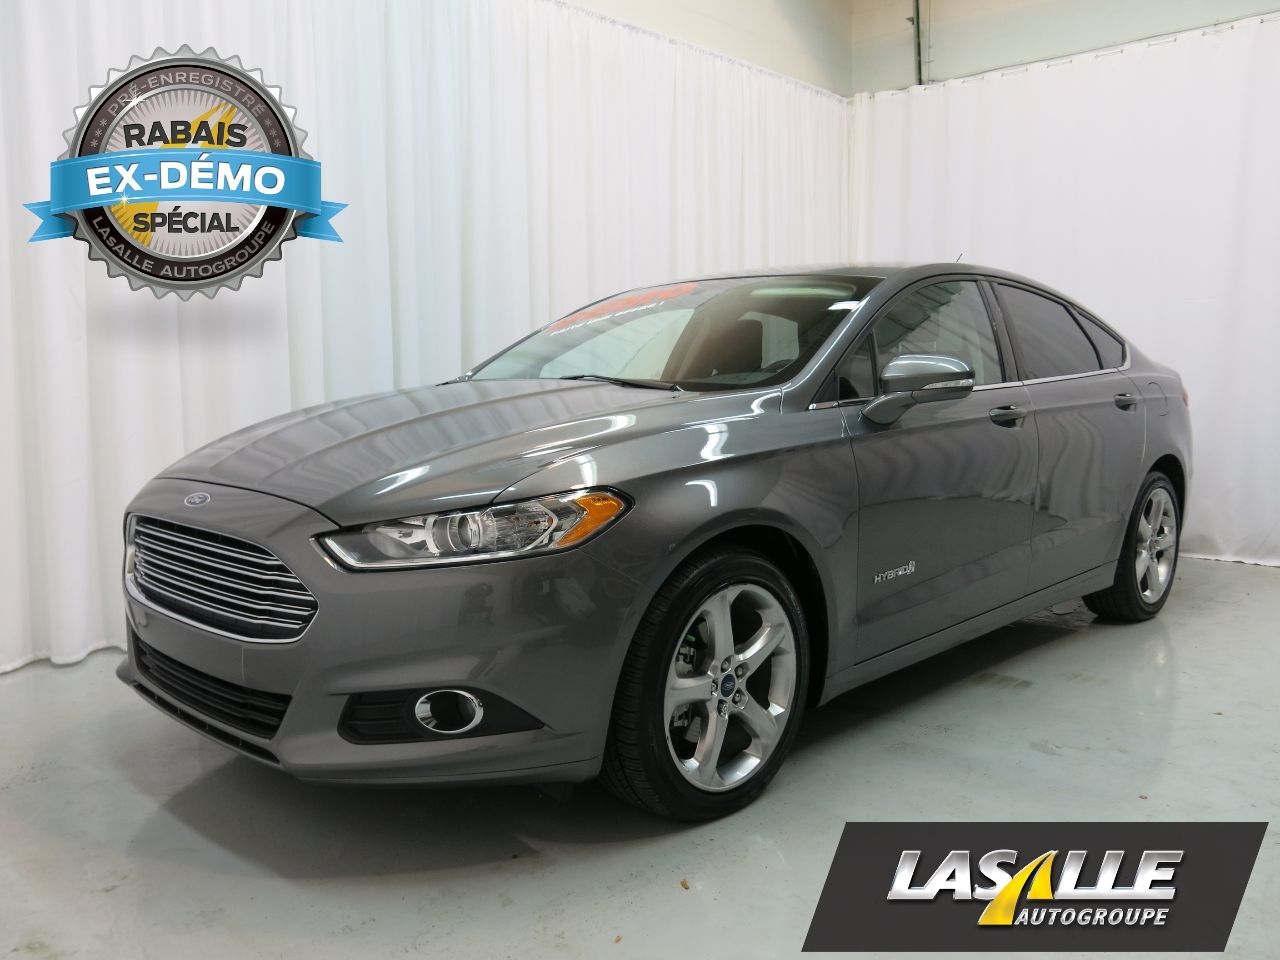 2013 ford fusion hybrid se ex demo for sale montreal 2013 ford fusion hybri. Cars Review. Best American Auto & Cars Review